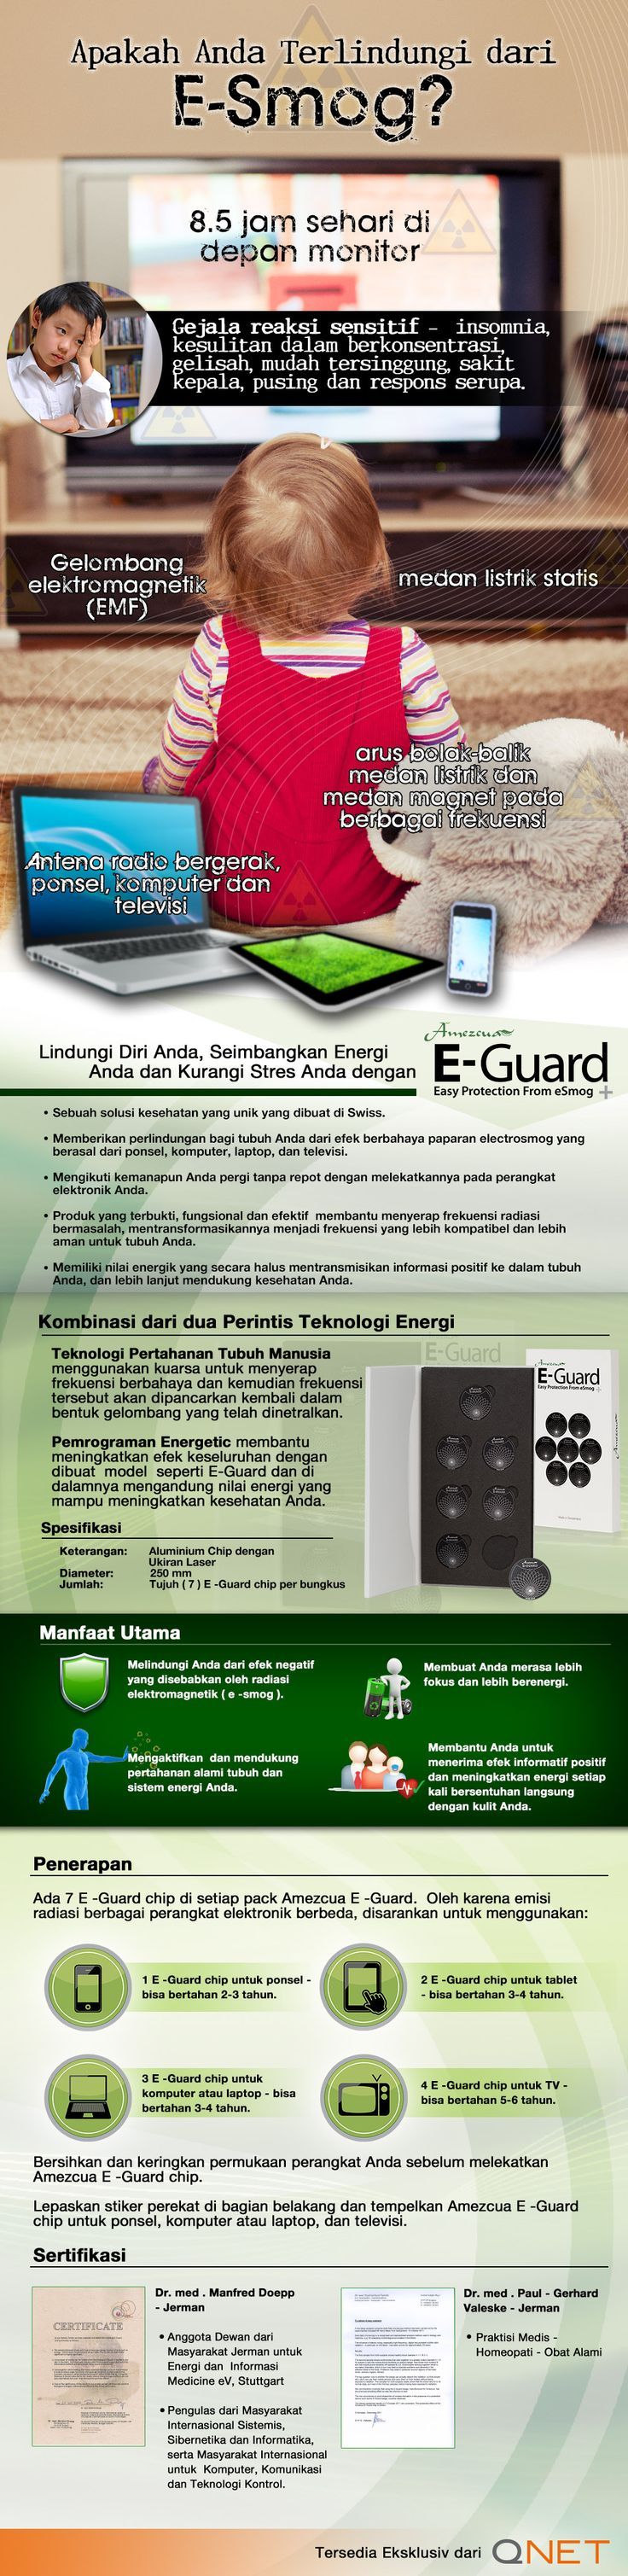 #Infographic: Protect yourself from E-Smog with E-Guard [Bahasa]